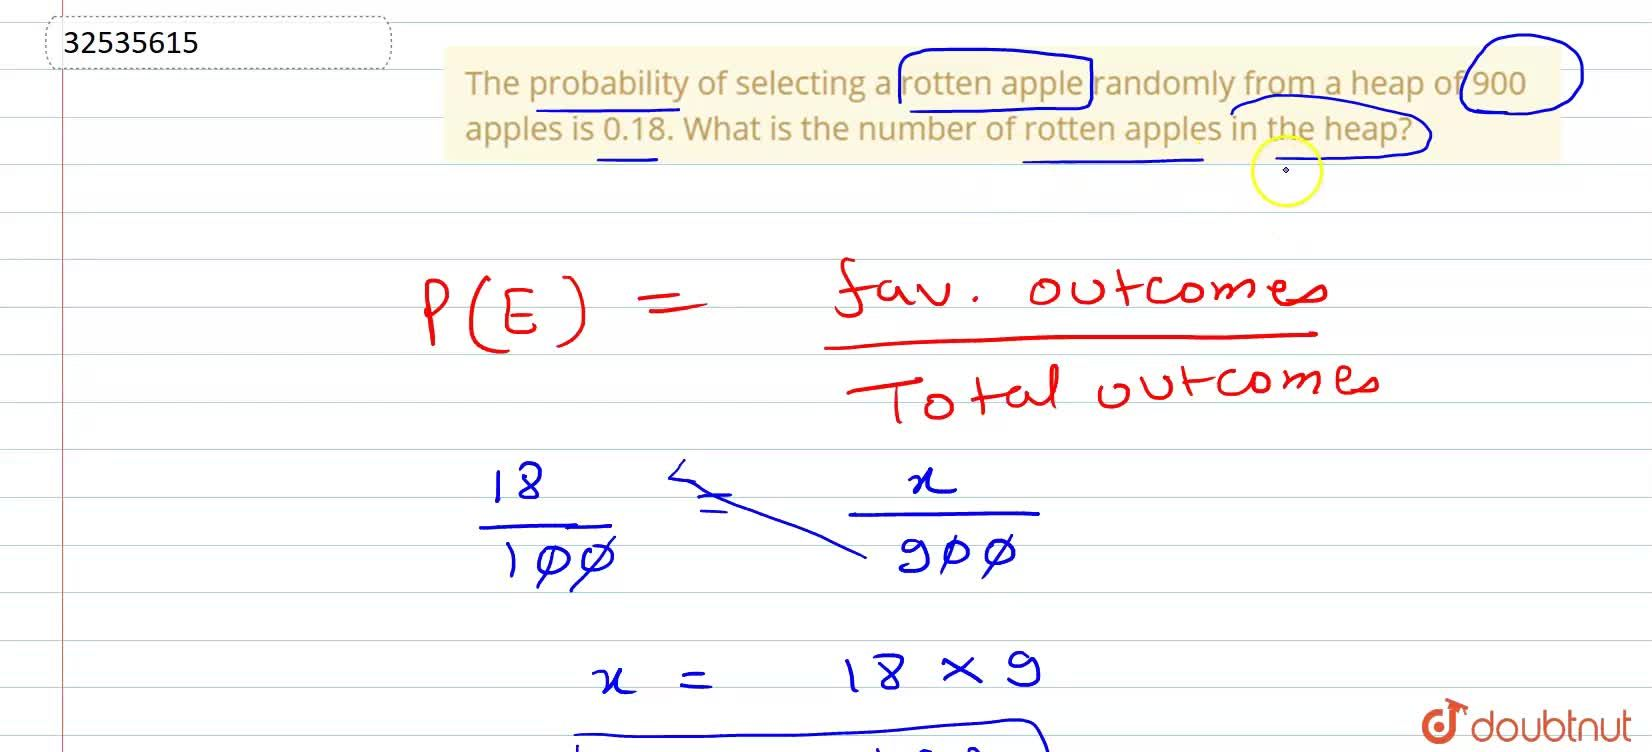 Solution for The probability of selecting a rotten apple random